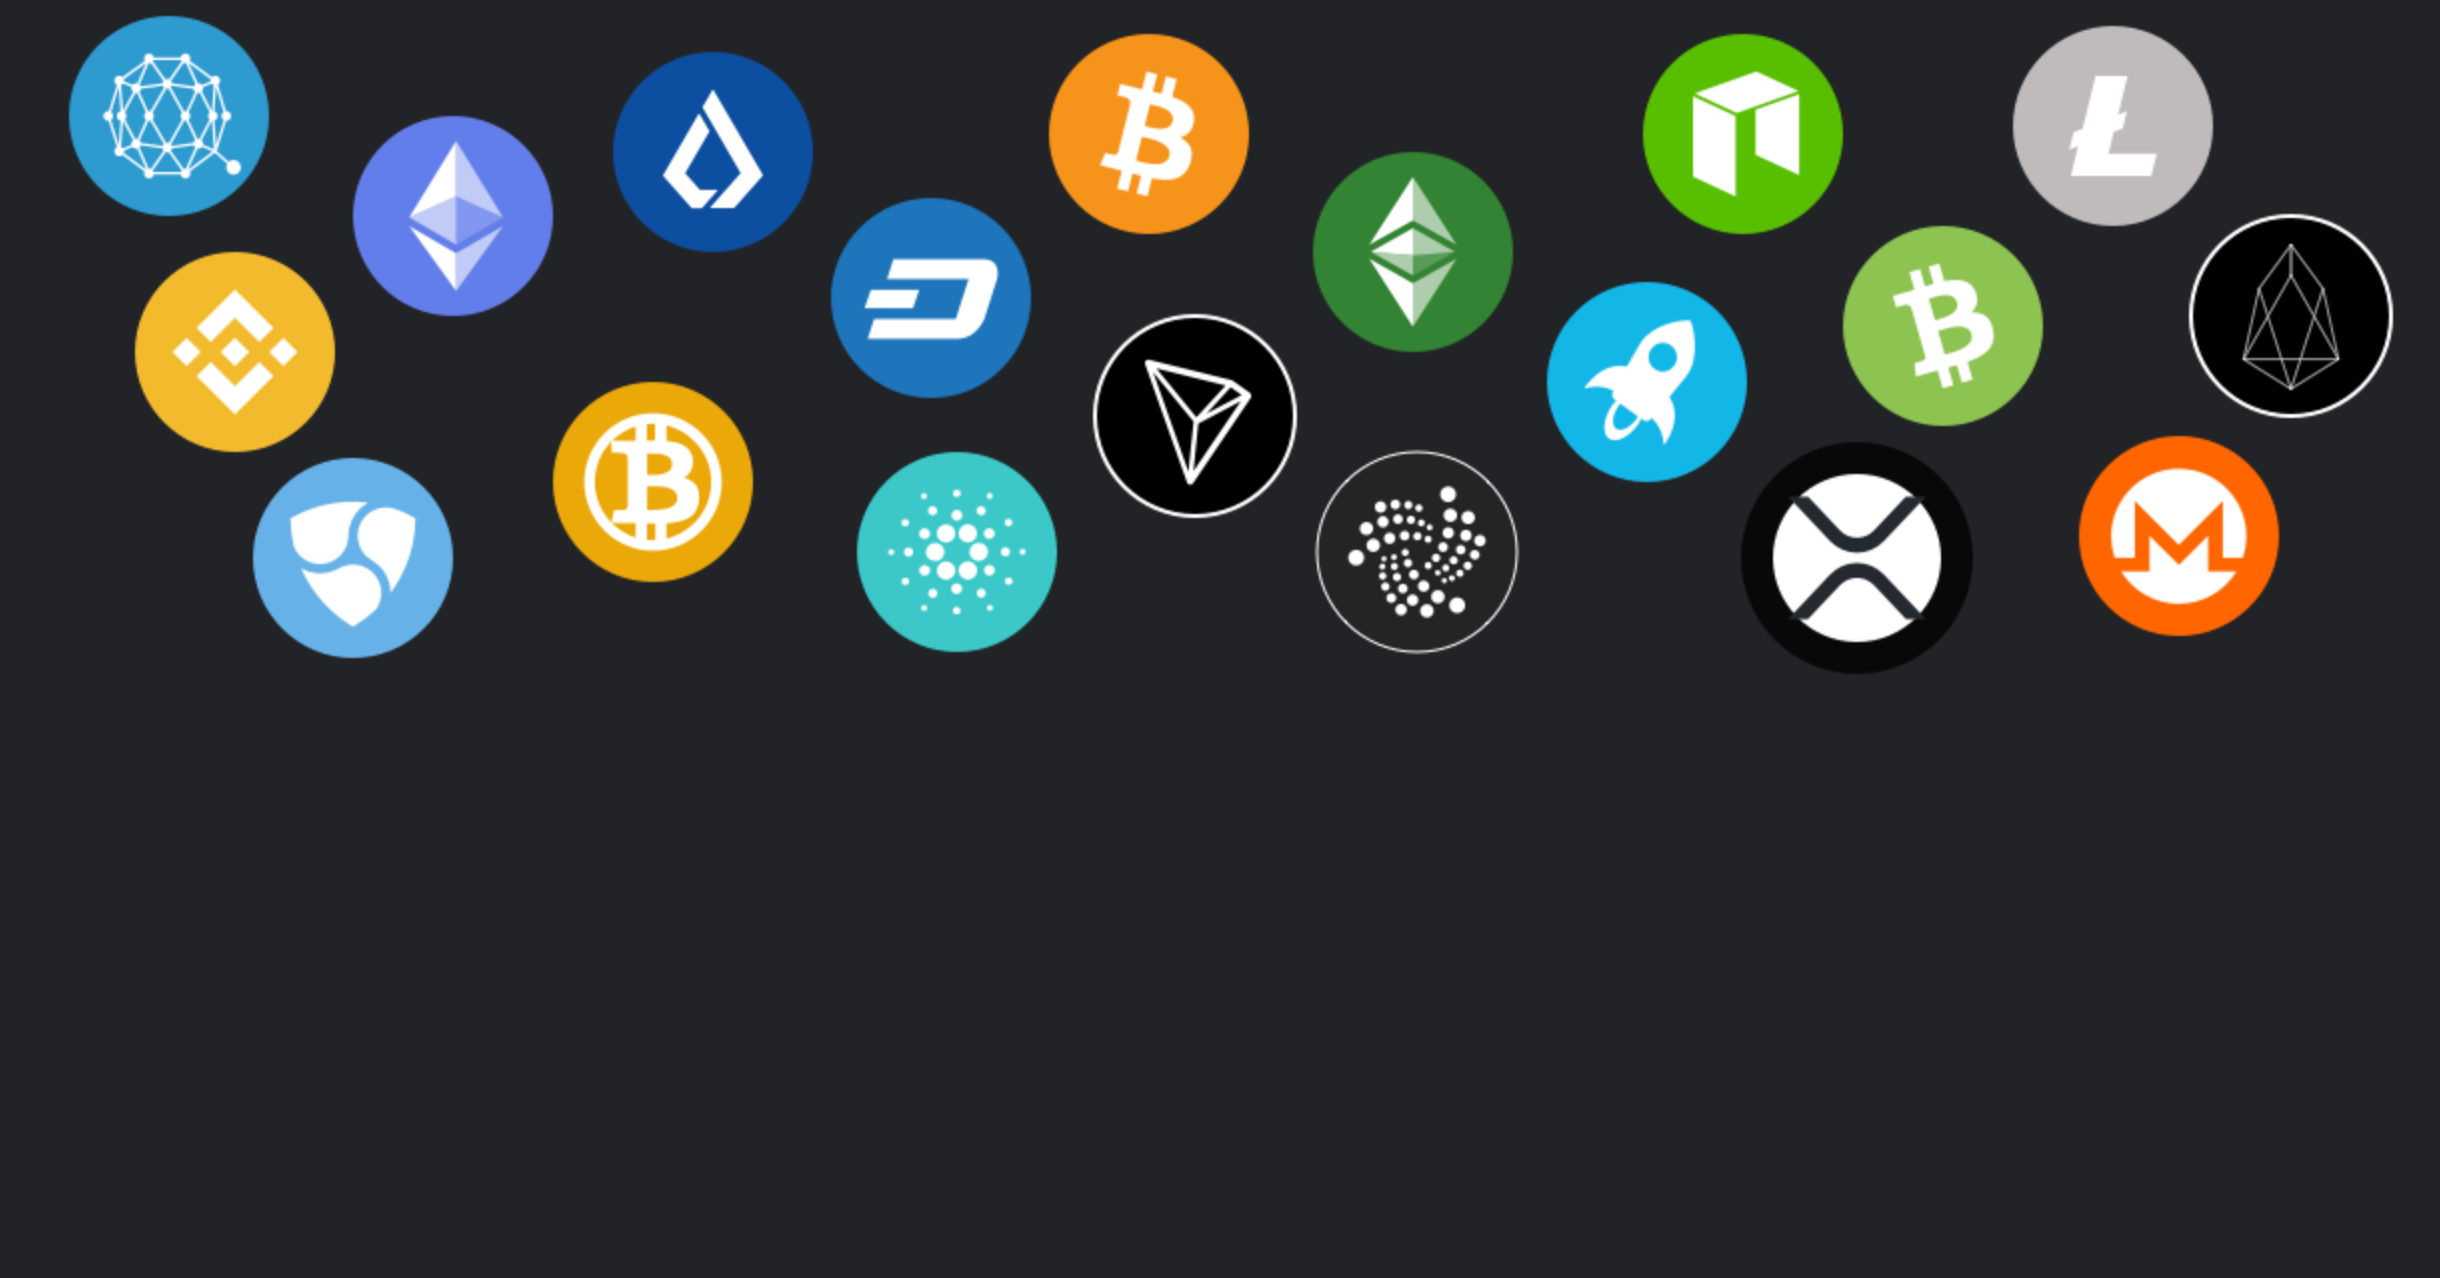 Cryptocurrency selling platform for items and physical goods